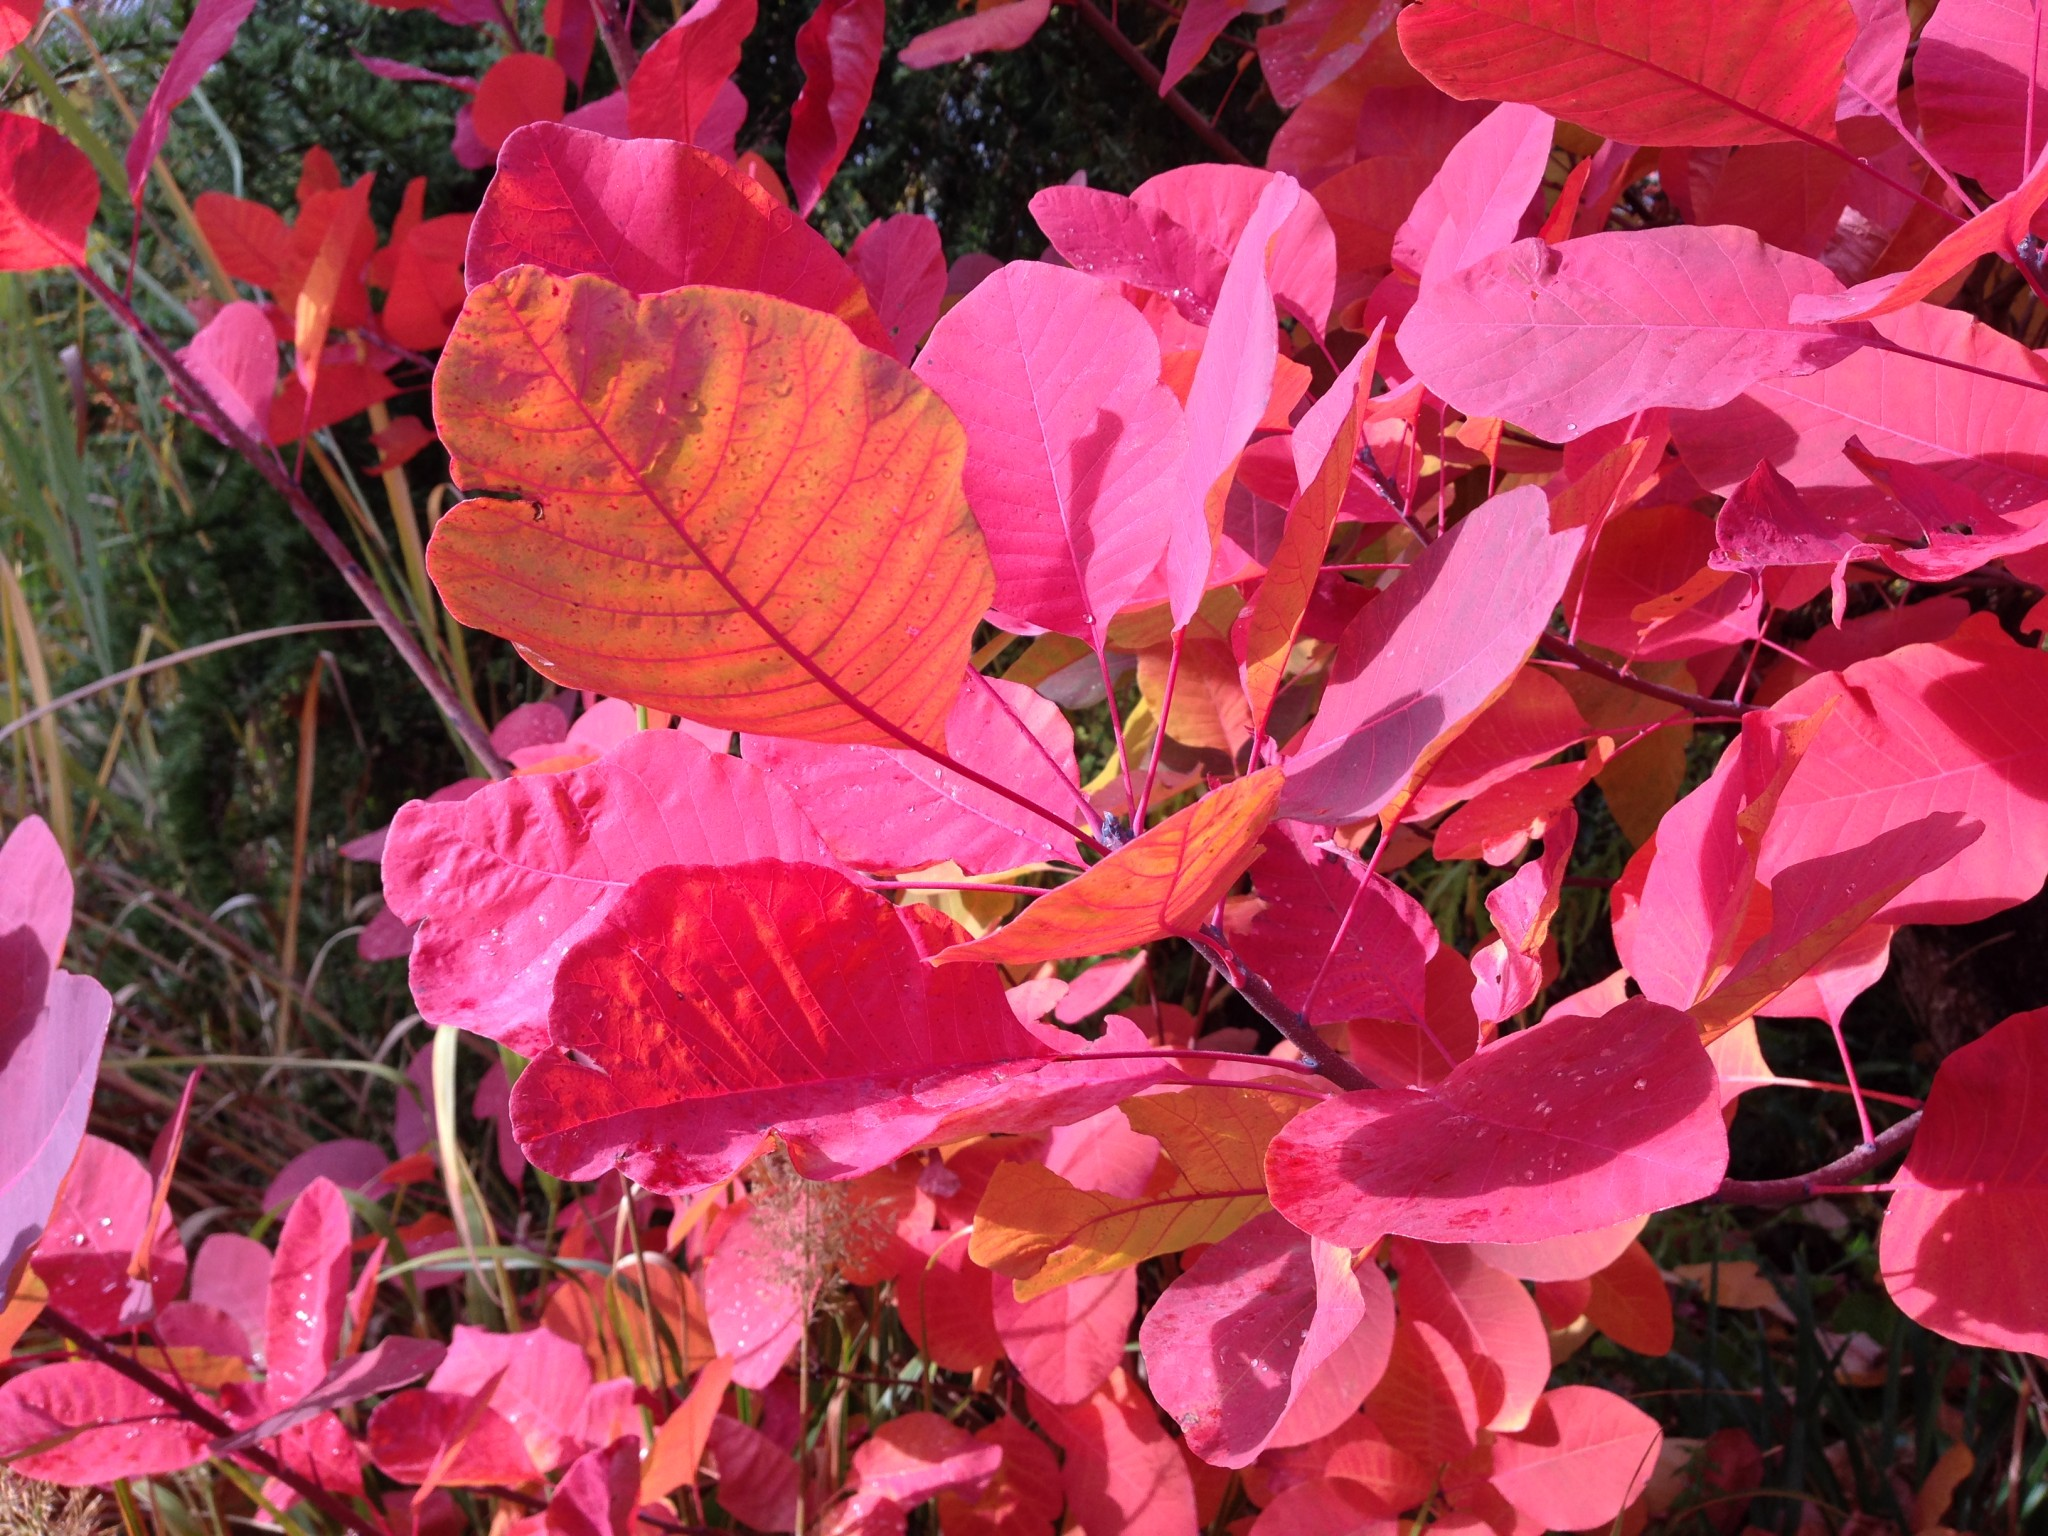 Cotinus 'Grace' (I think) at Gossler Farms